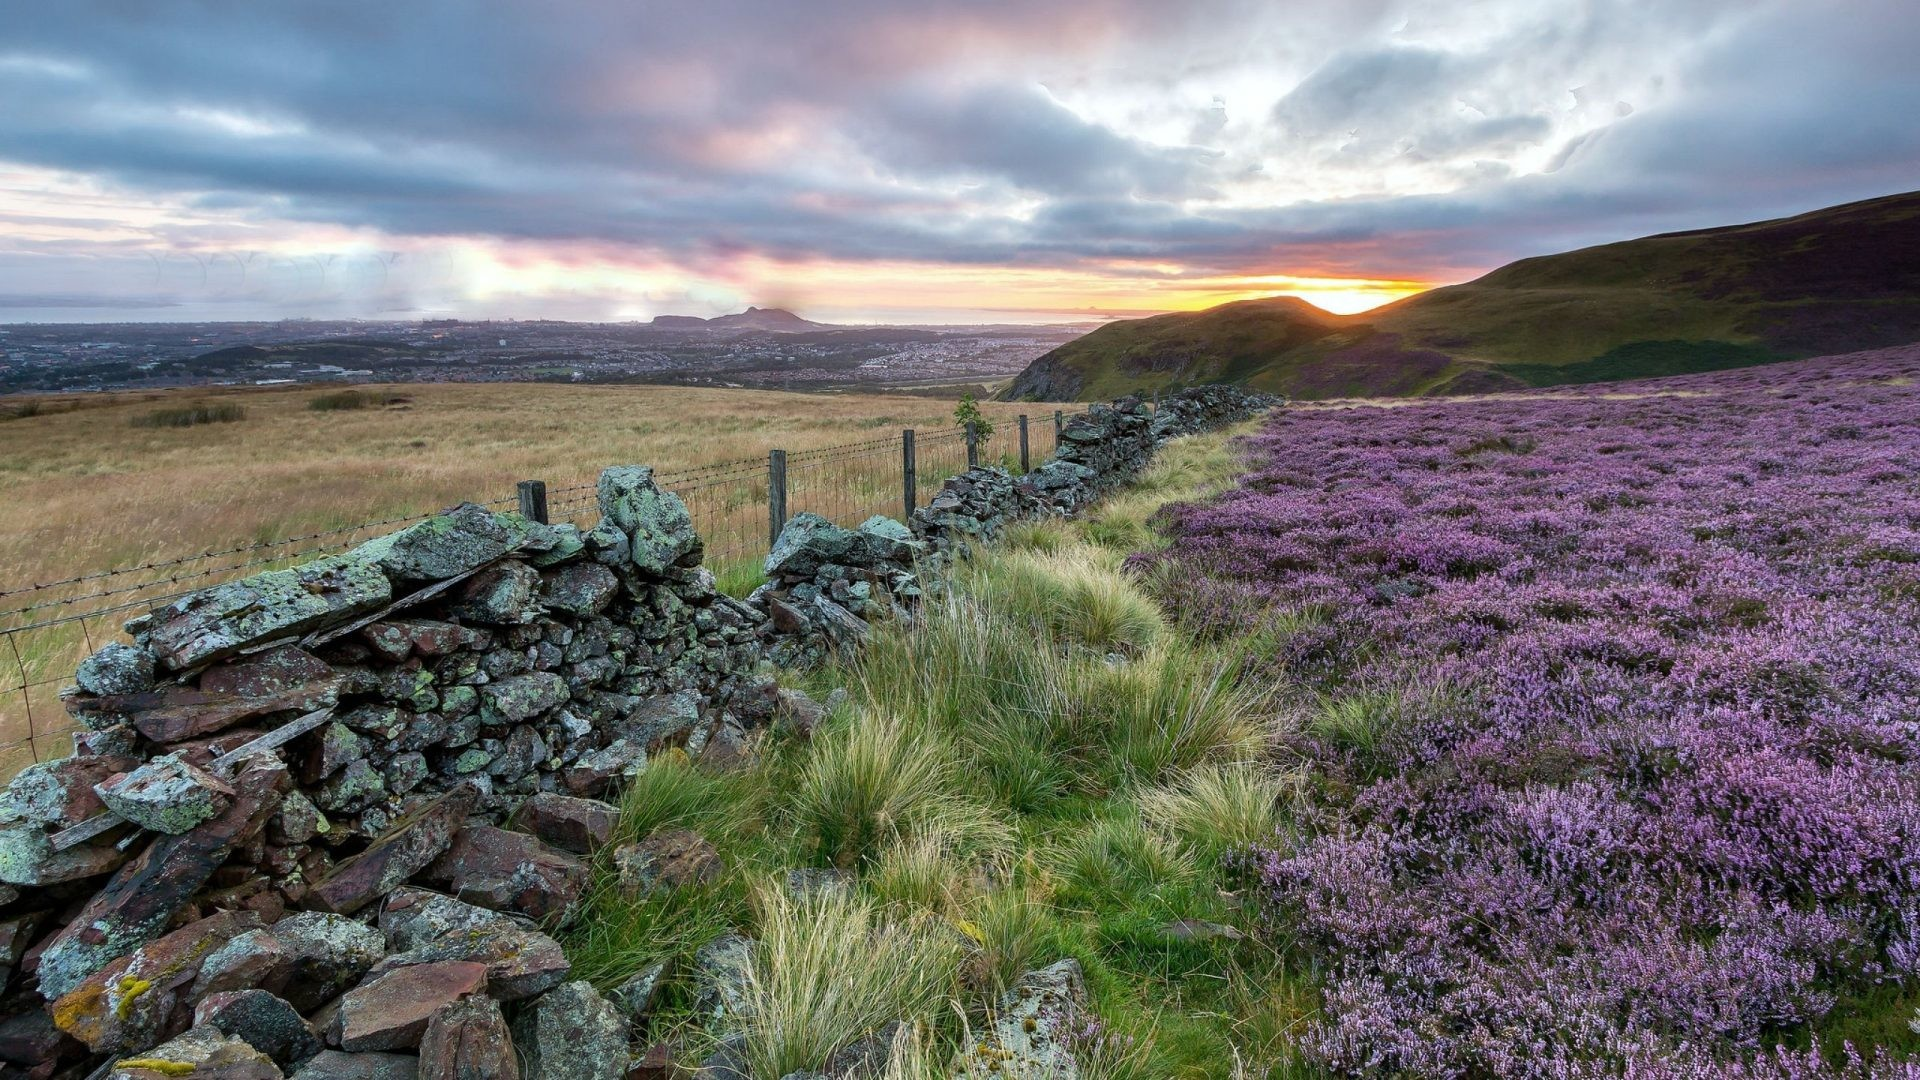 Res: 1920x1080, Heather Tag - Sunset Nature Fence Scotland Scottish Heather Flowers  Wallpaper For Iphone for HD 16